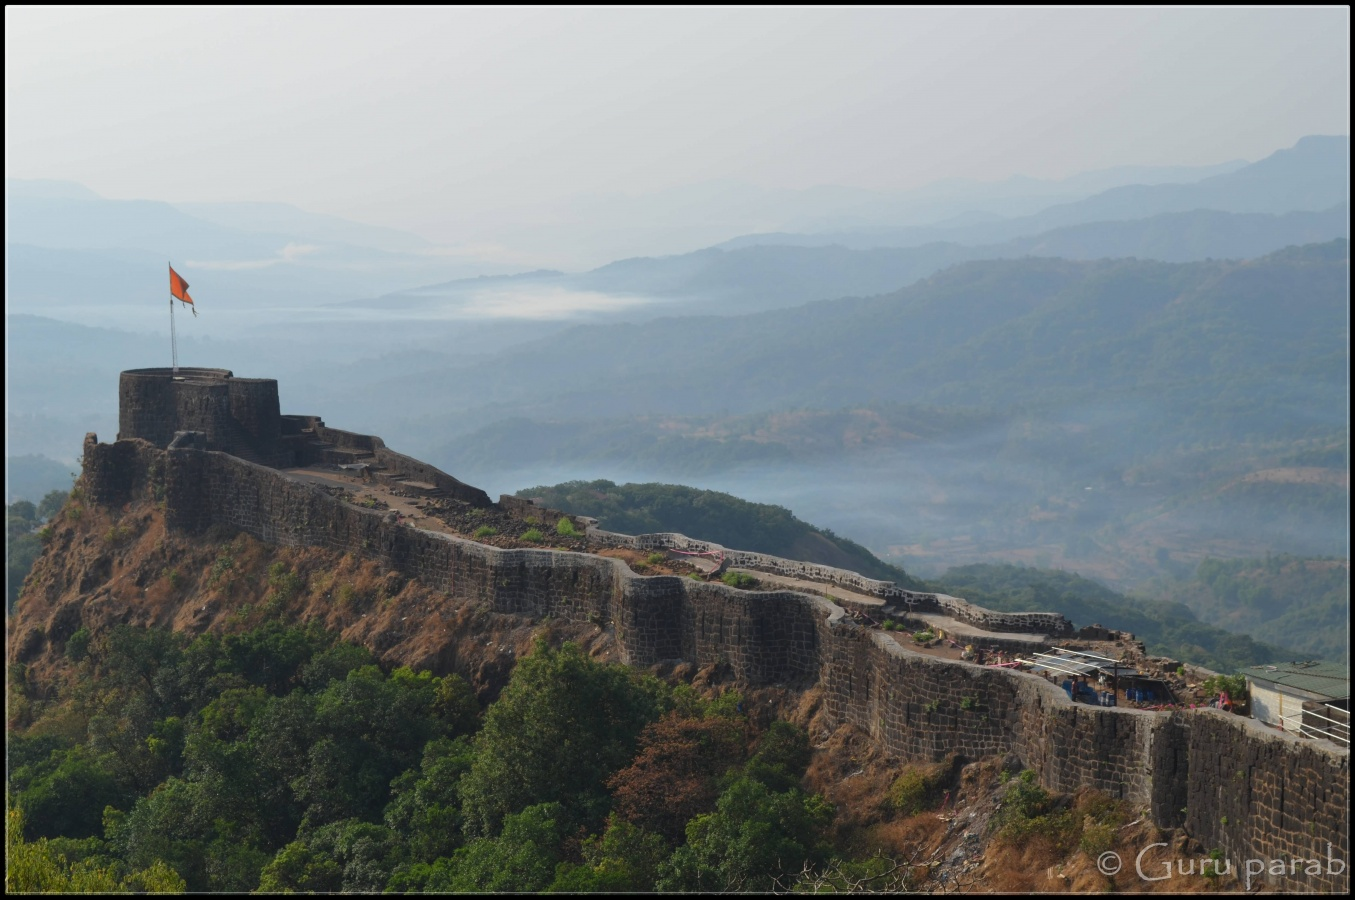 essay on mahabaleshwar Essay on my favourite picnic spot mahabaleshwar, type to search for people, research interests and universities ehow offers quick and easy recipe ideas and cooking techniques for everyday meals as well as holidays and other celebrations.